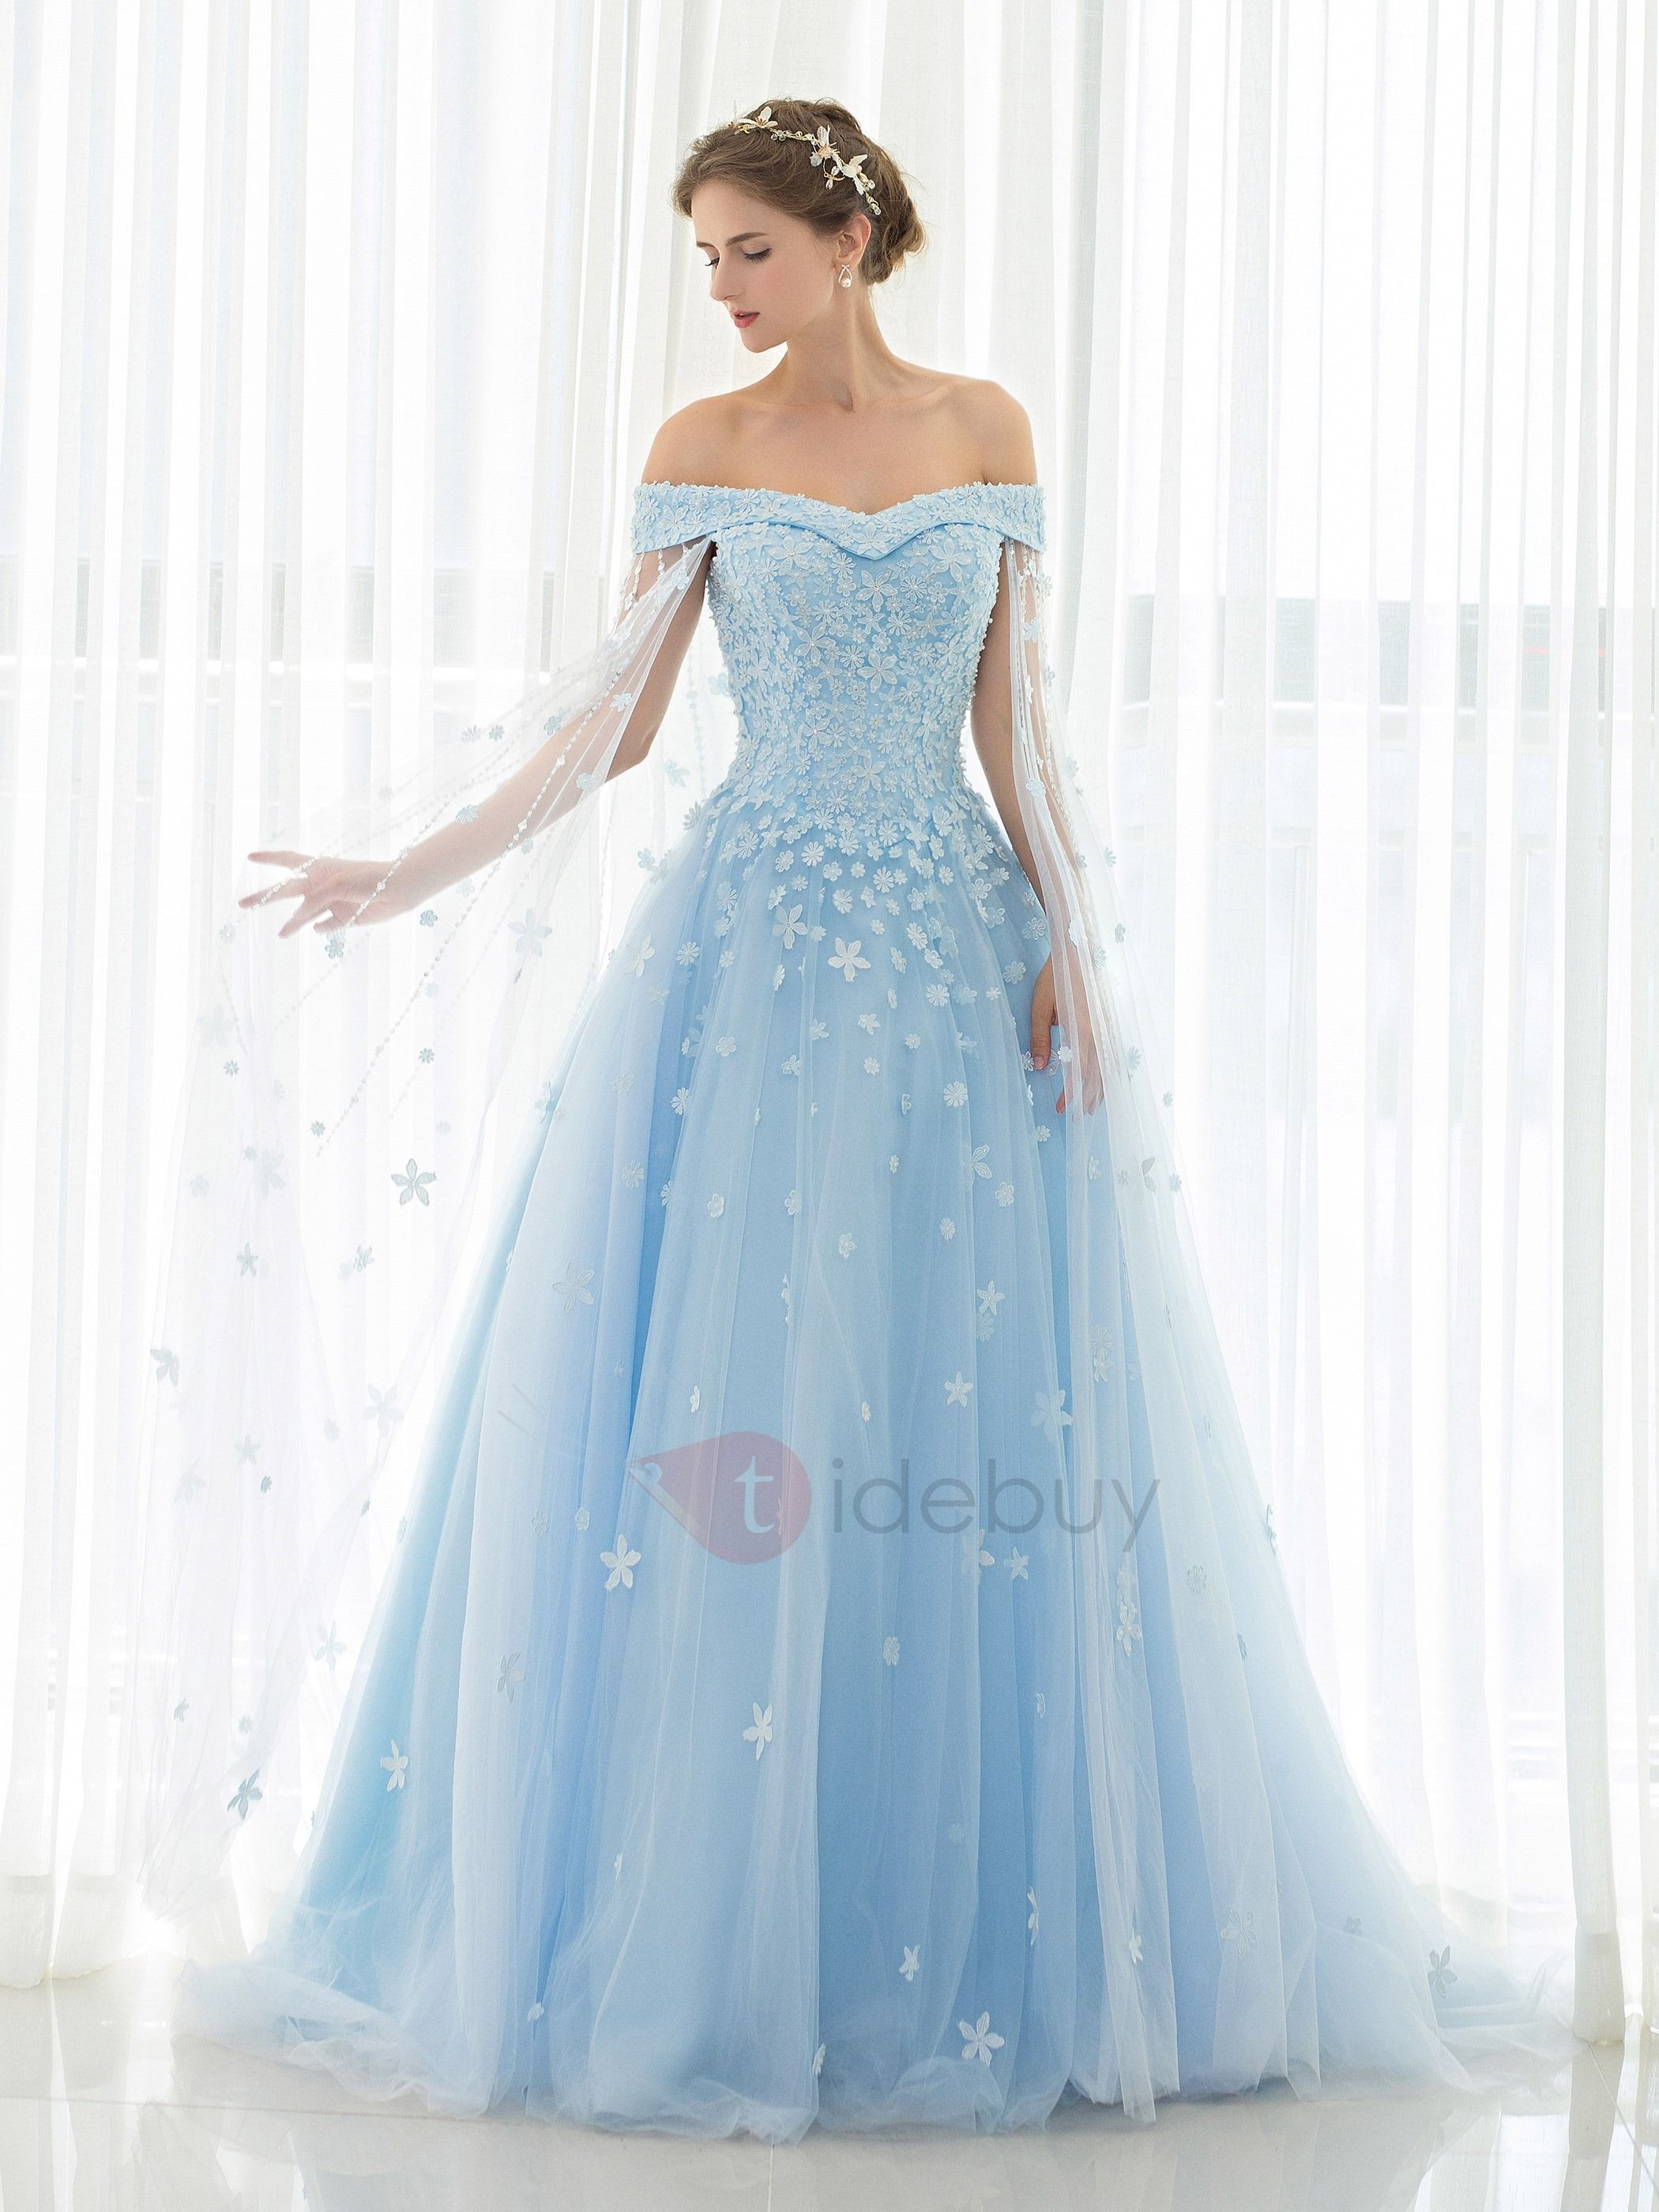 f87a09b3b8 ... Offers High Quality Eye-Catching Off-the-Shoulder Cap Sleeves Appliques  Beading Watteau Train Prom Dress